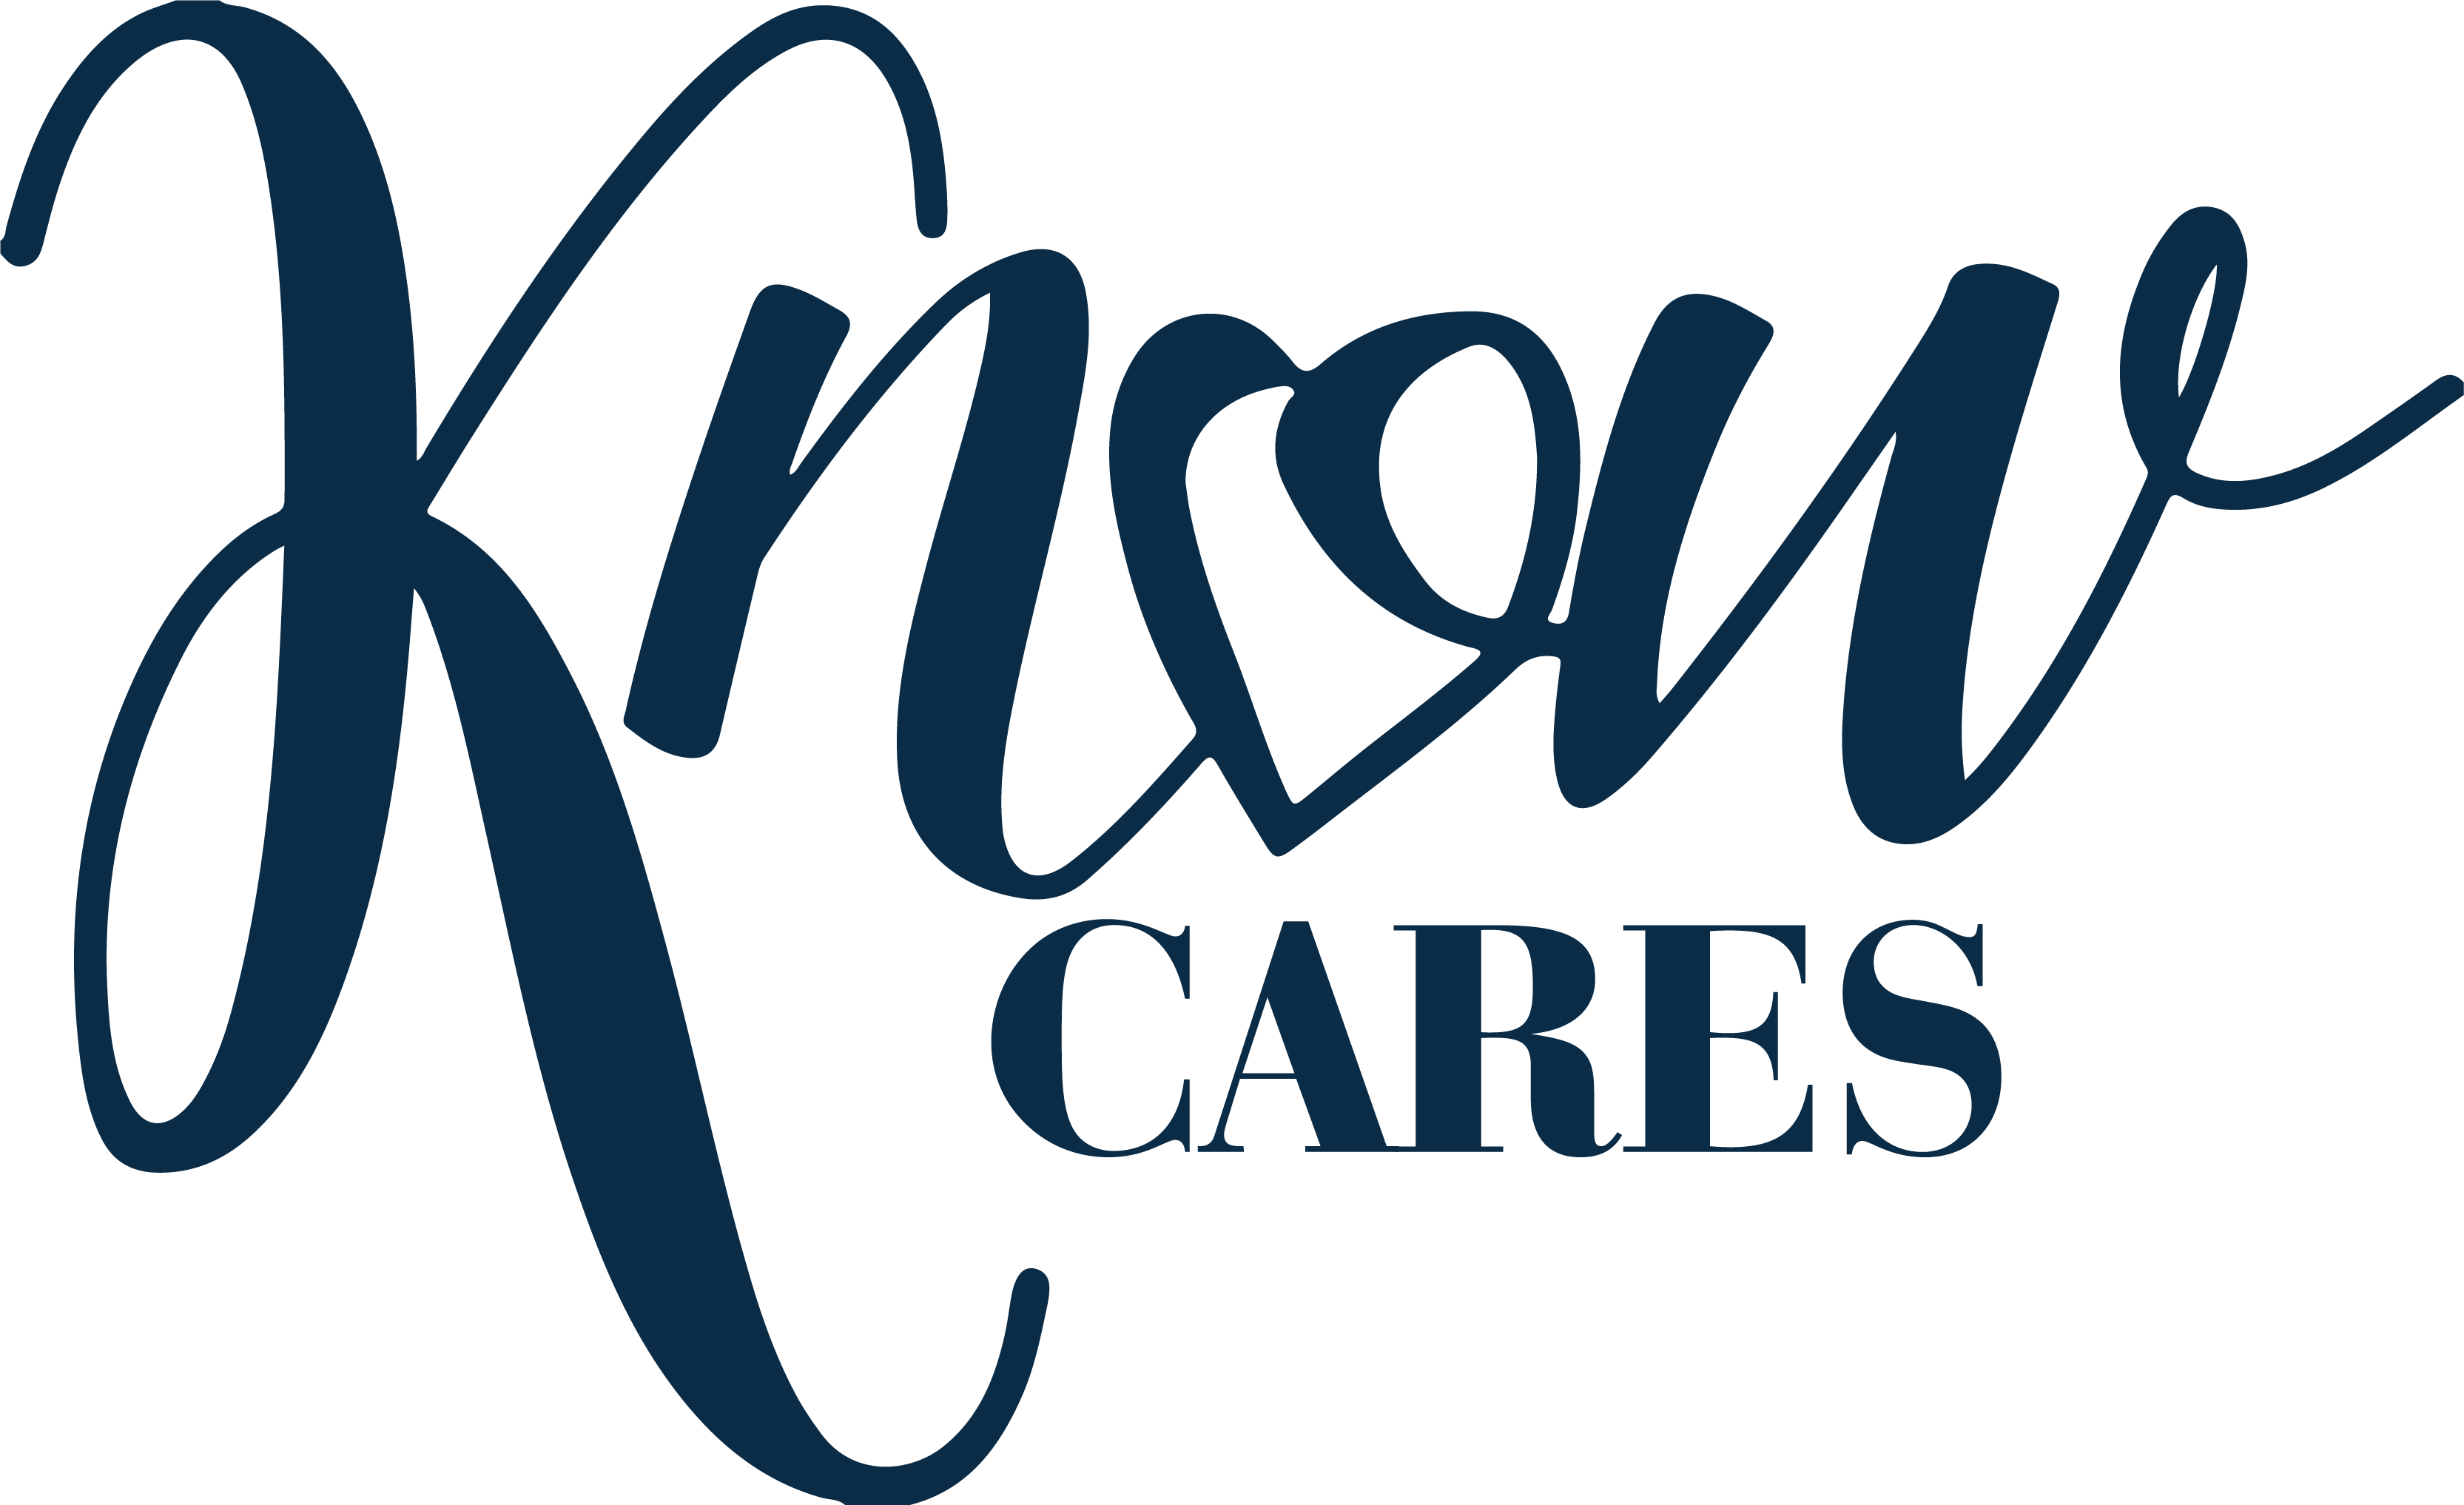 Know__cares_#0b2c46_edit